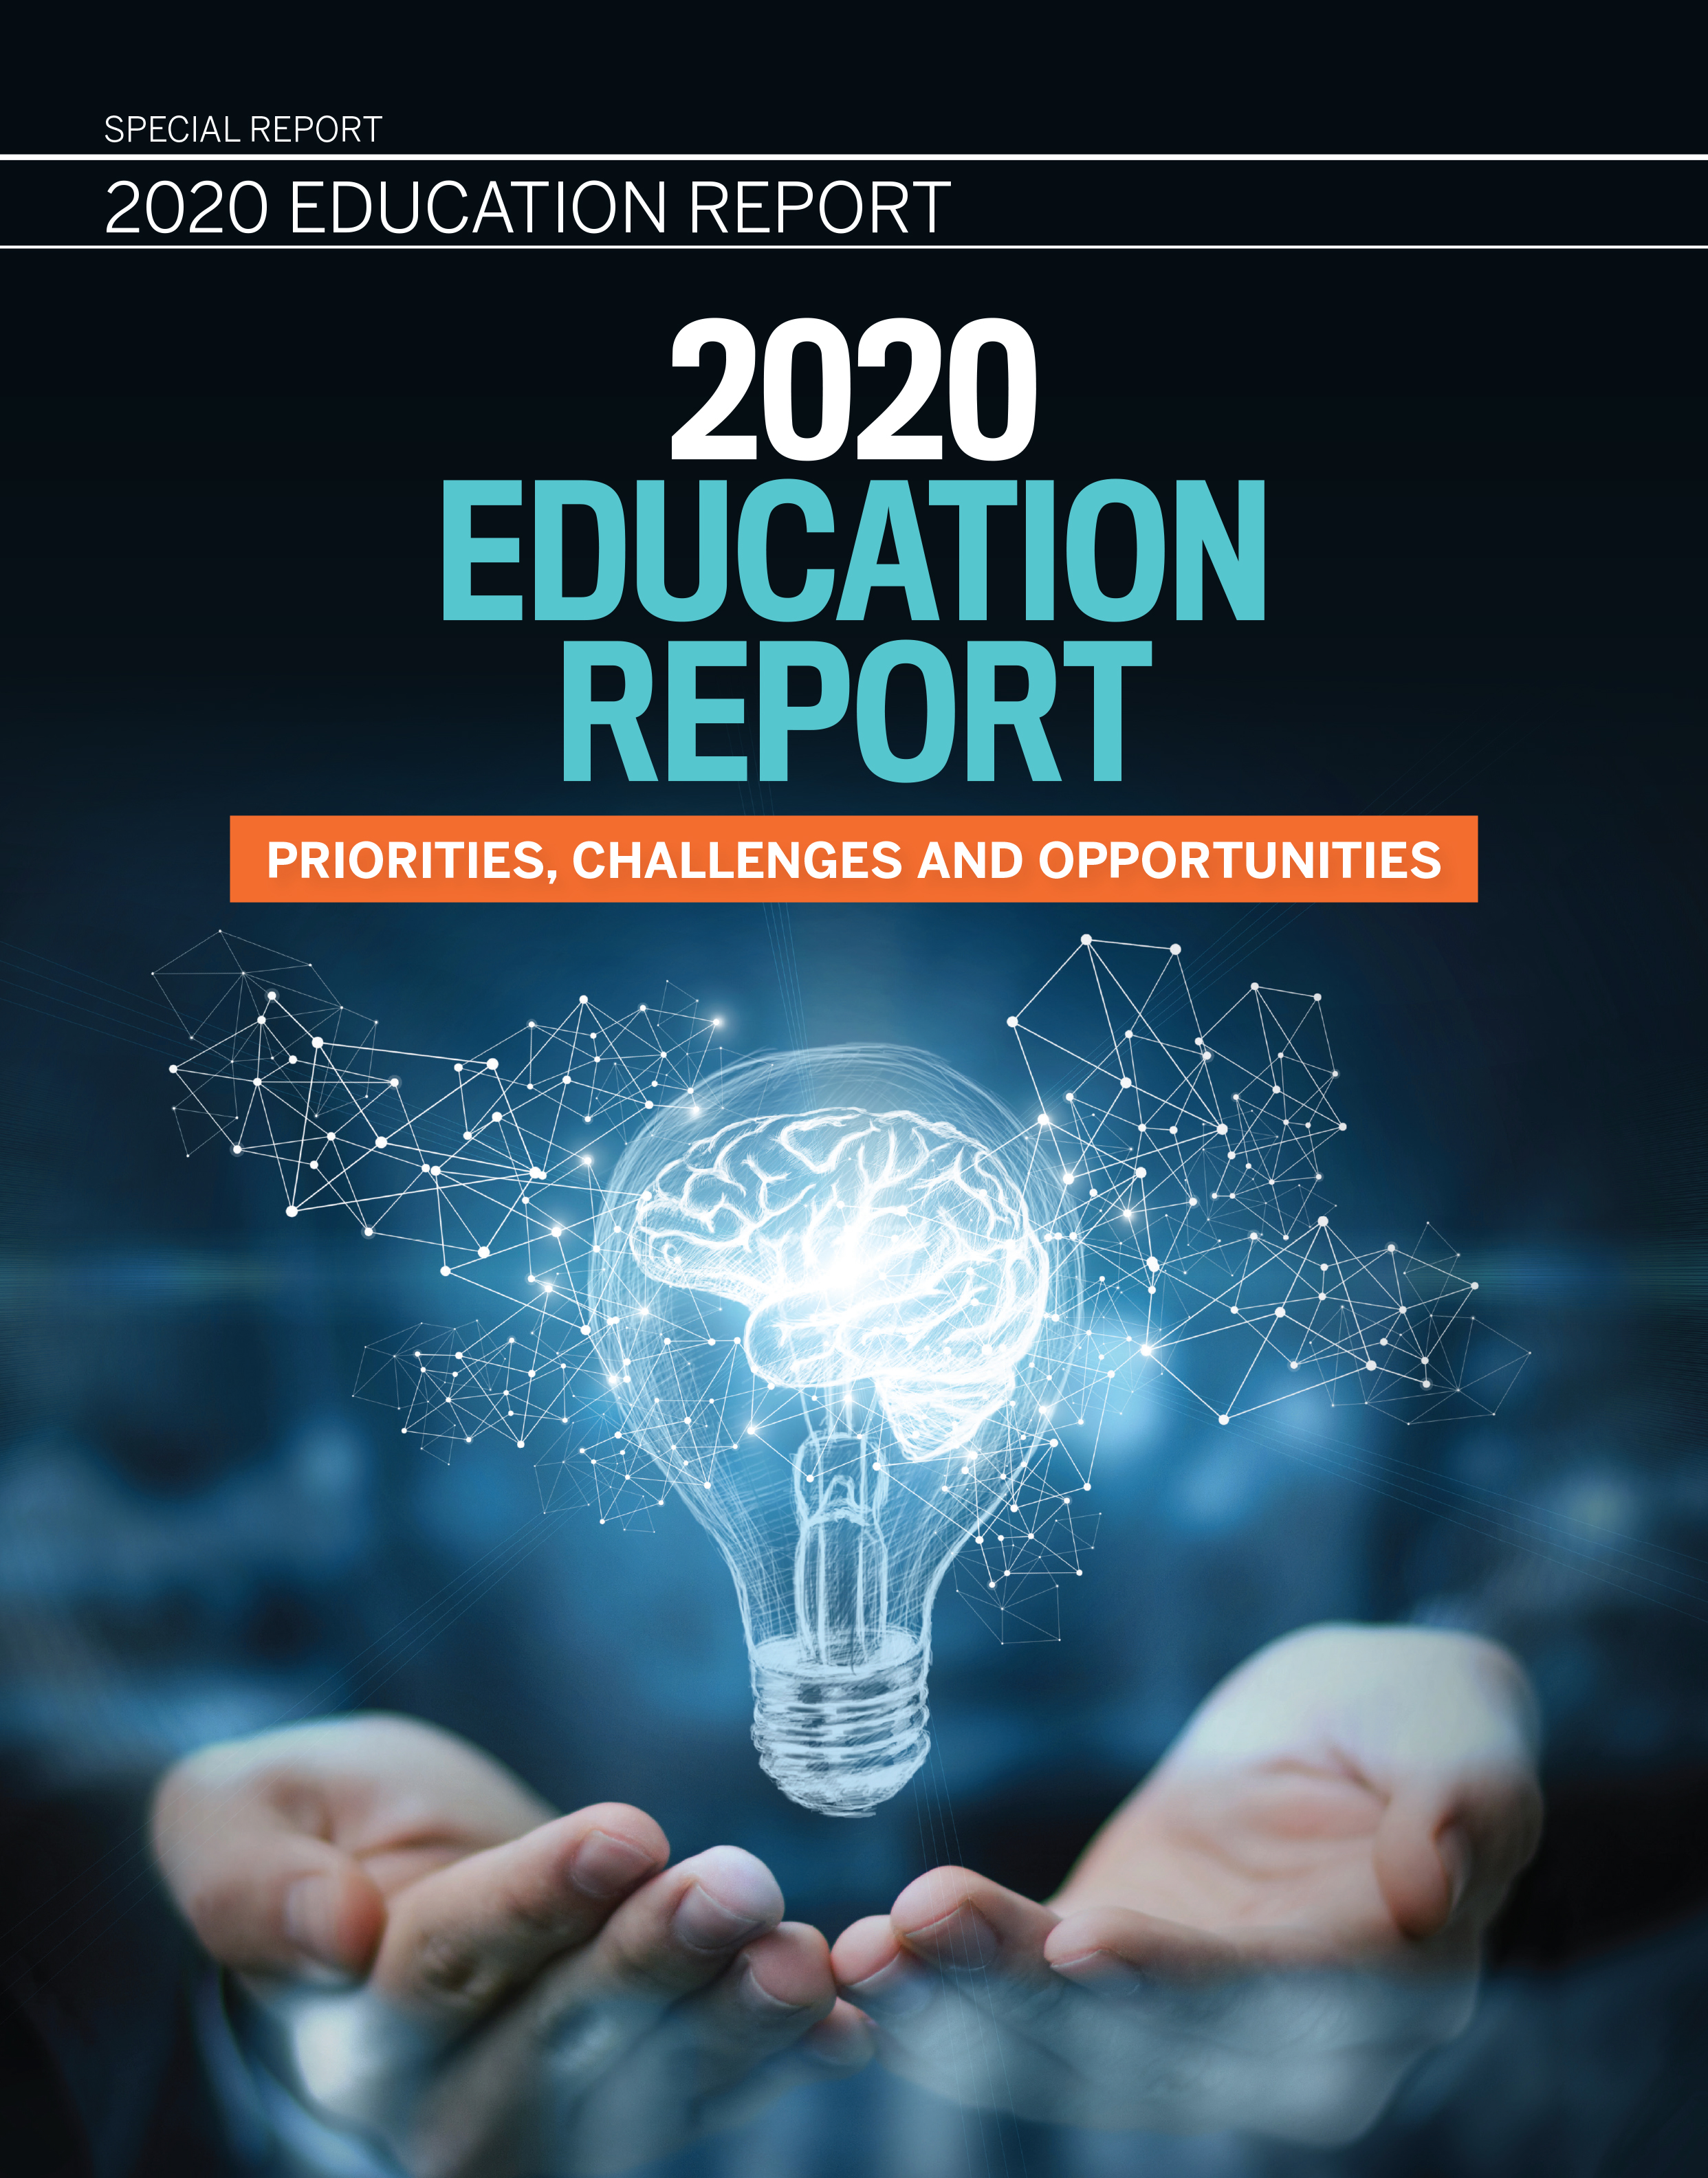 Education Report 2020